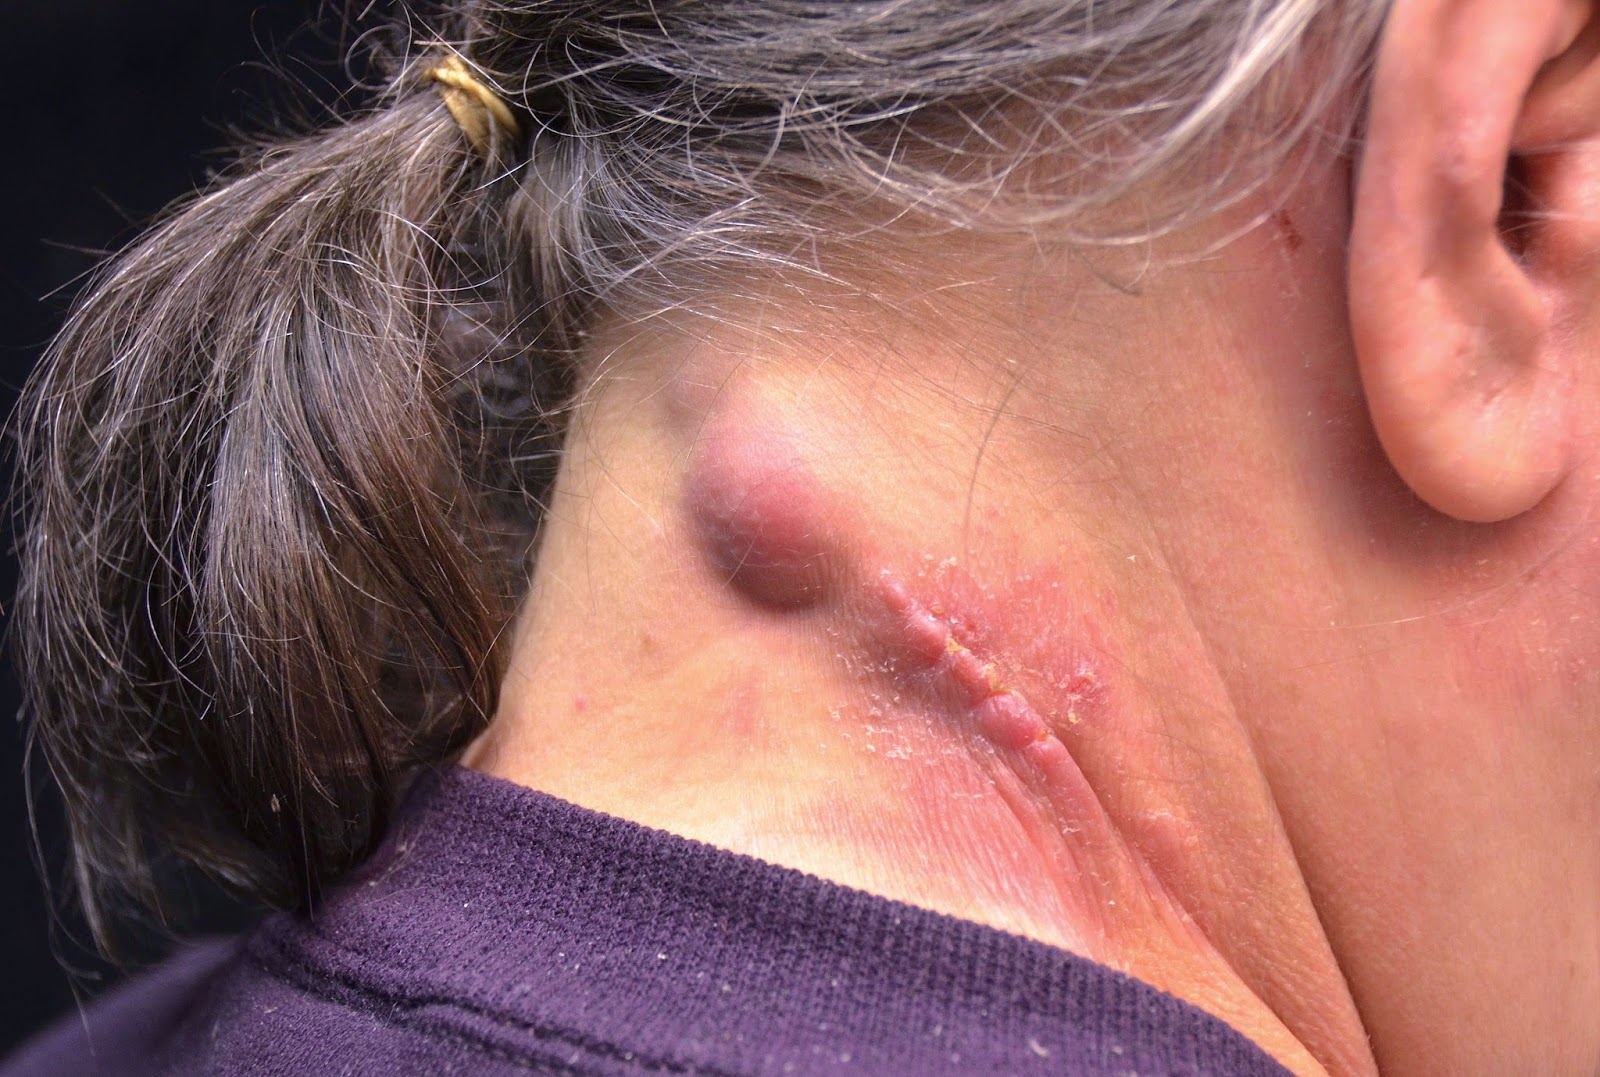 skin abscess pictures